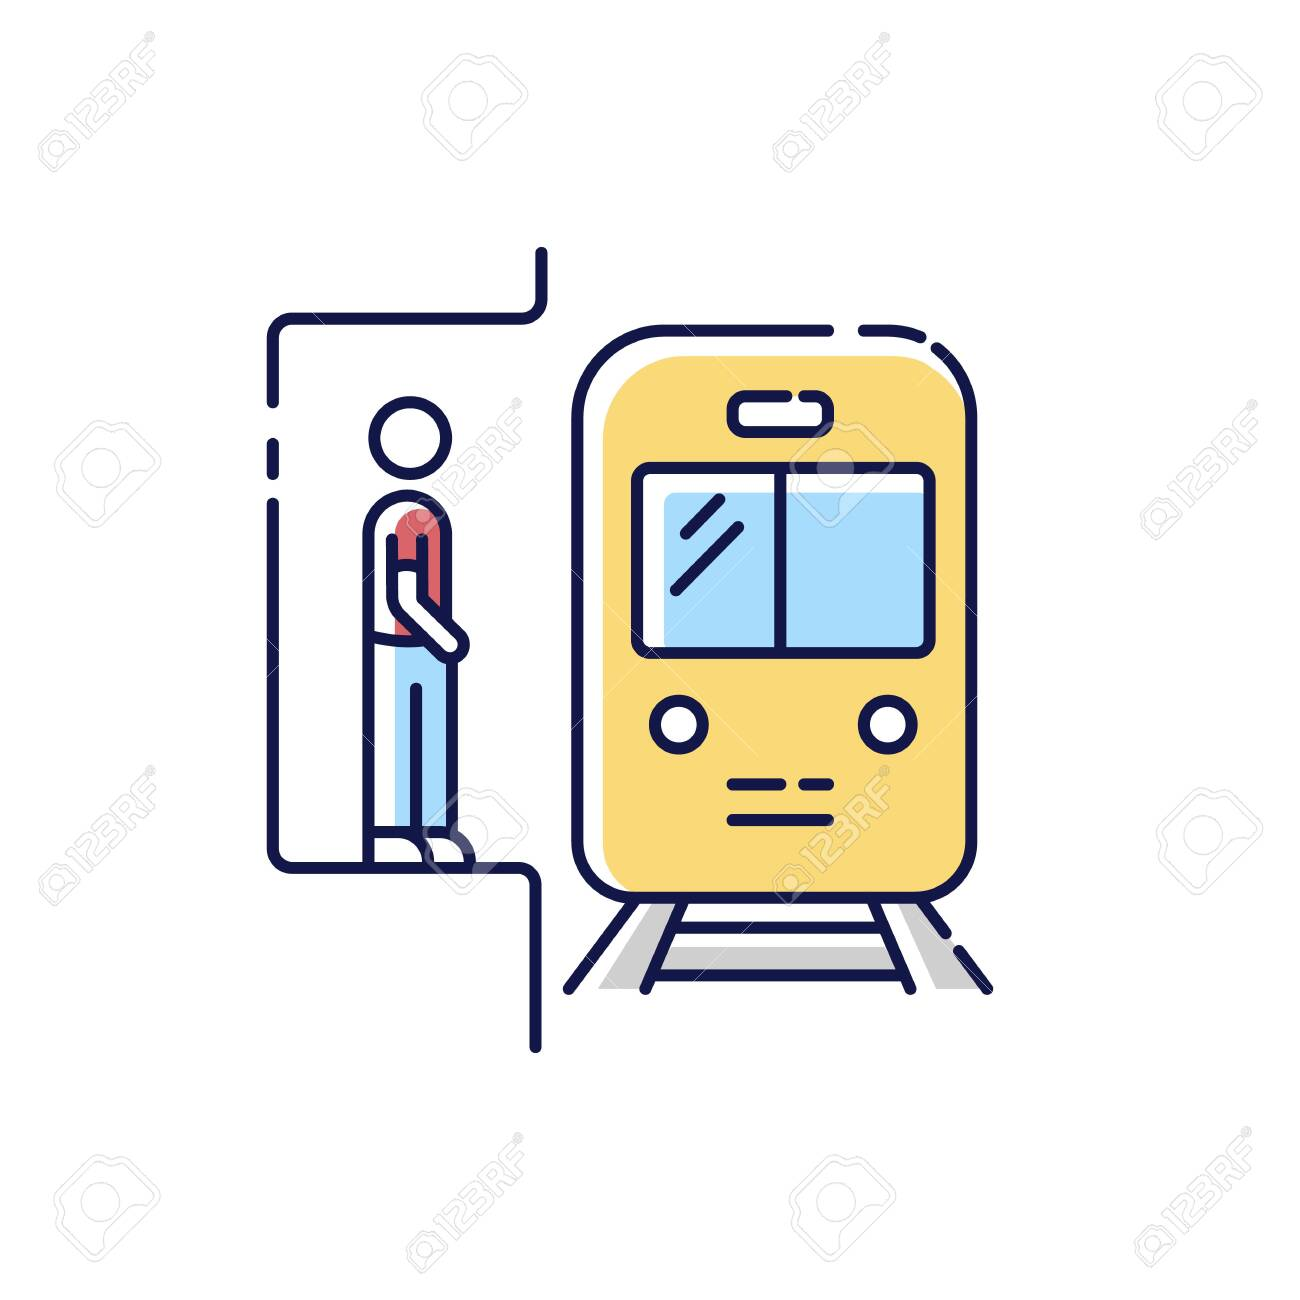 Subway RGB color icon. Railway station. Platform for passenger to wait for metro train. Fast public commuter. Urban infrastructure. City transit means. Isolated vector illustration - 148171647